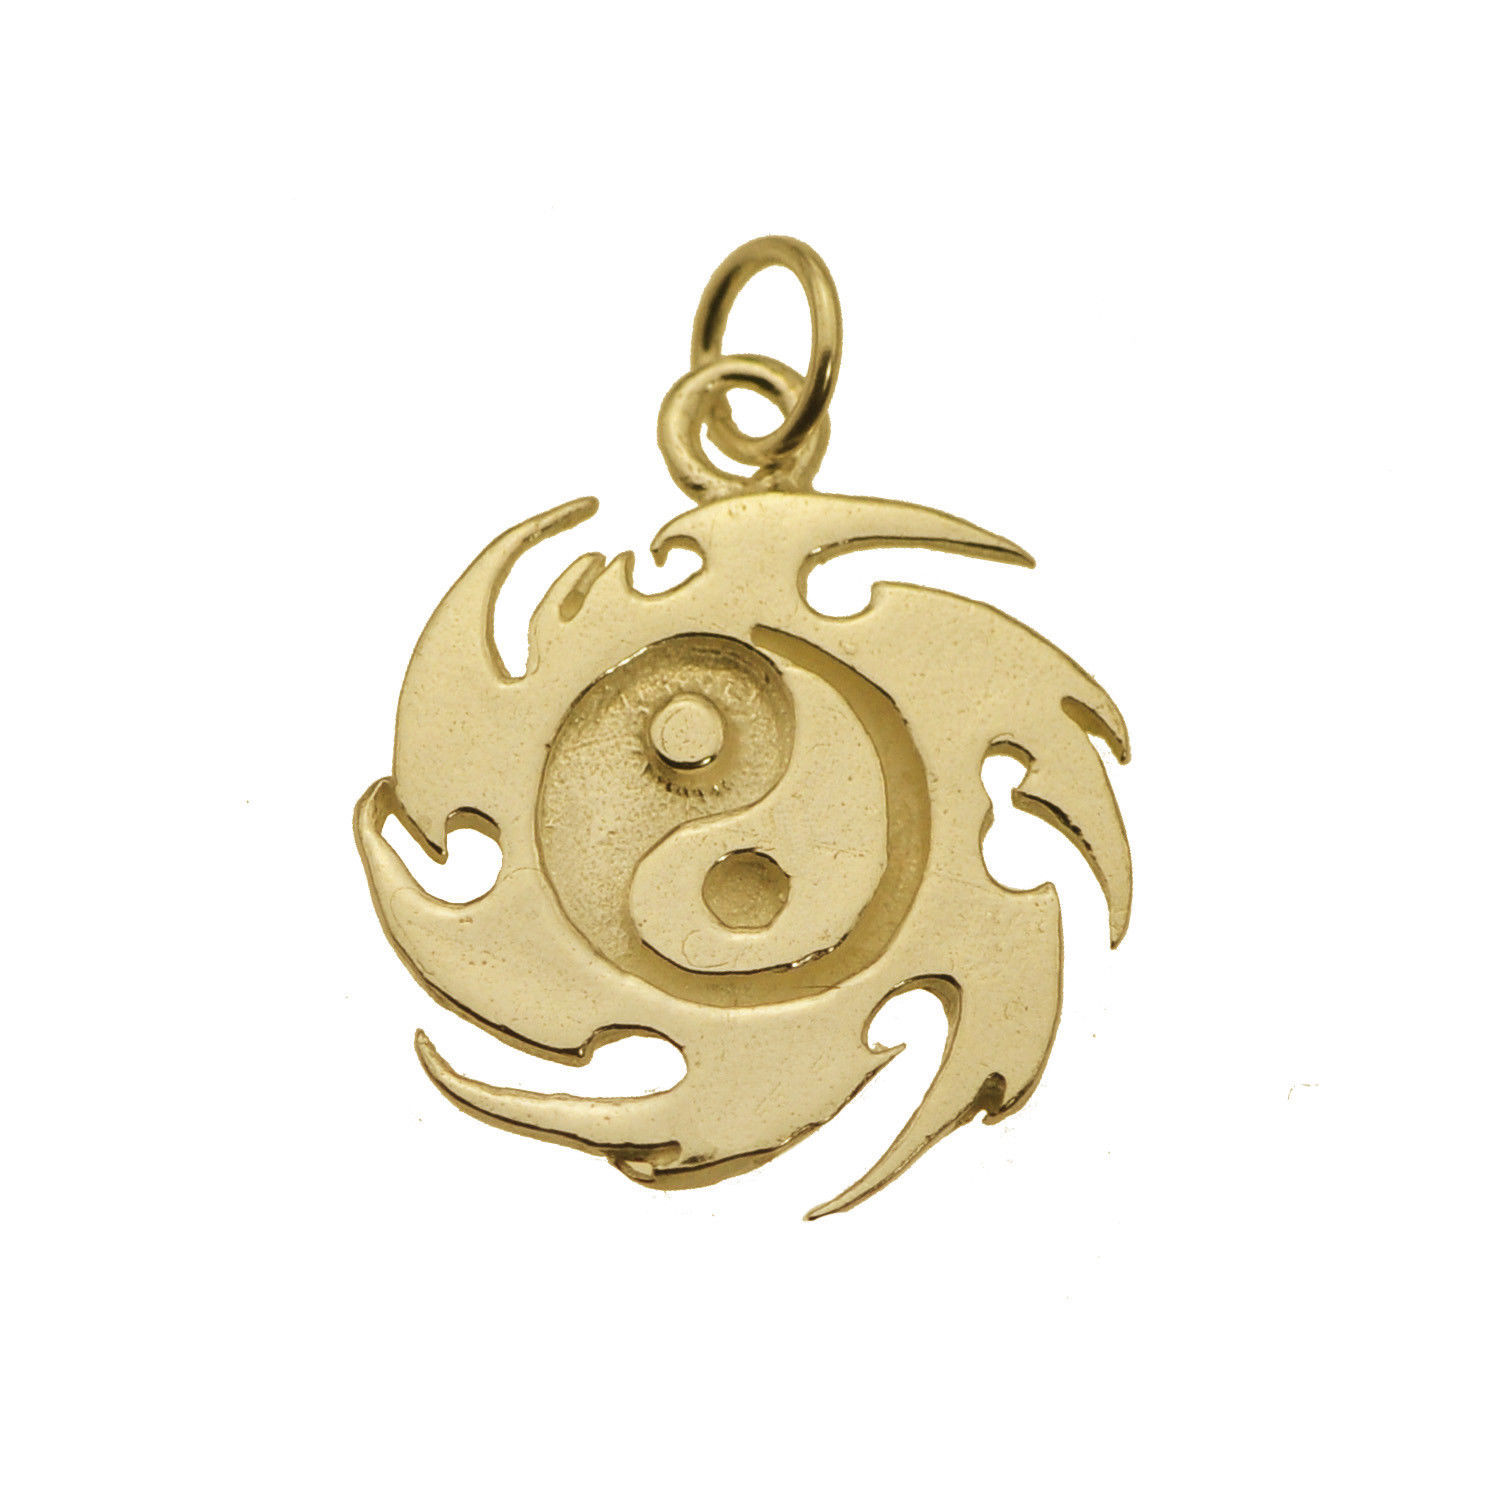 Yin Yang Fire Master Element Real 24K Gold Plated Jewelry New Charm